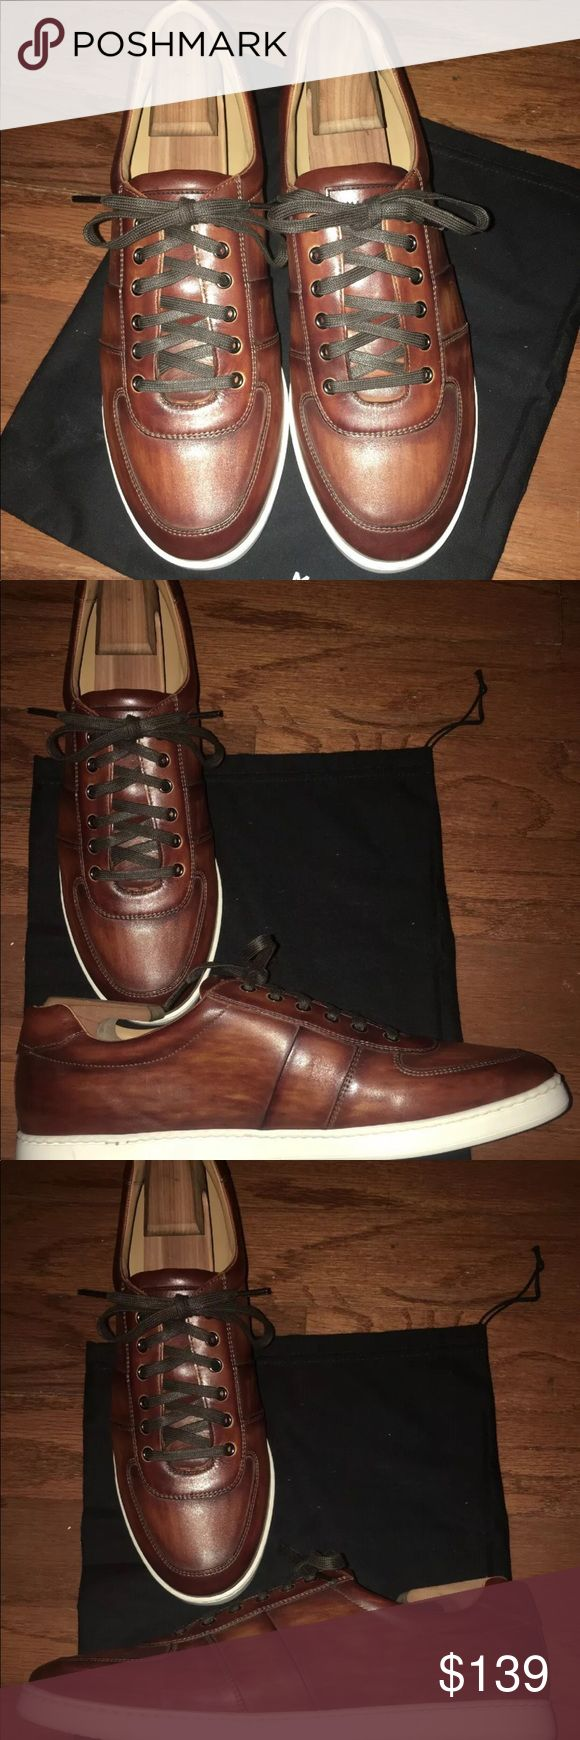 $325 NEW Magnanni Franco Lo Sneakers Cognac Sz 12 These brand new Magnanni Franc...